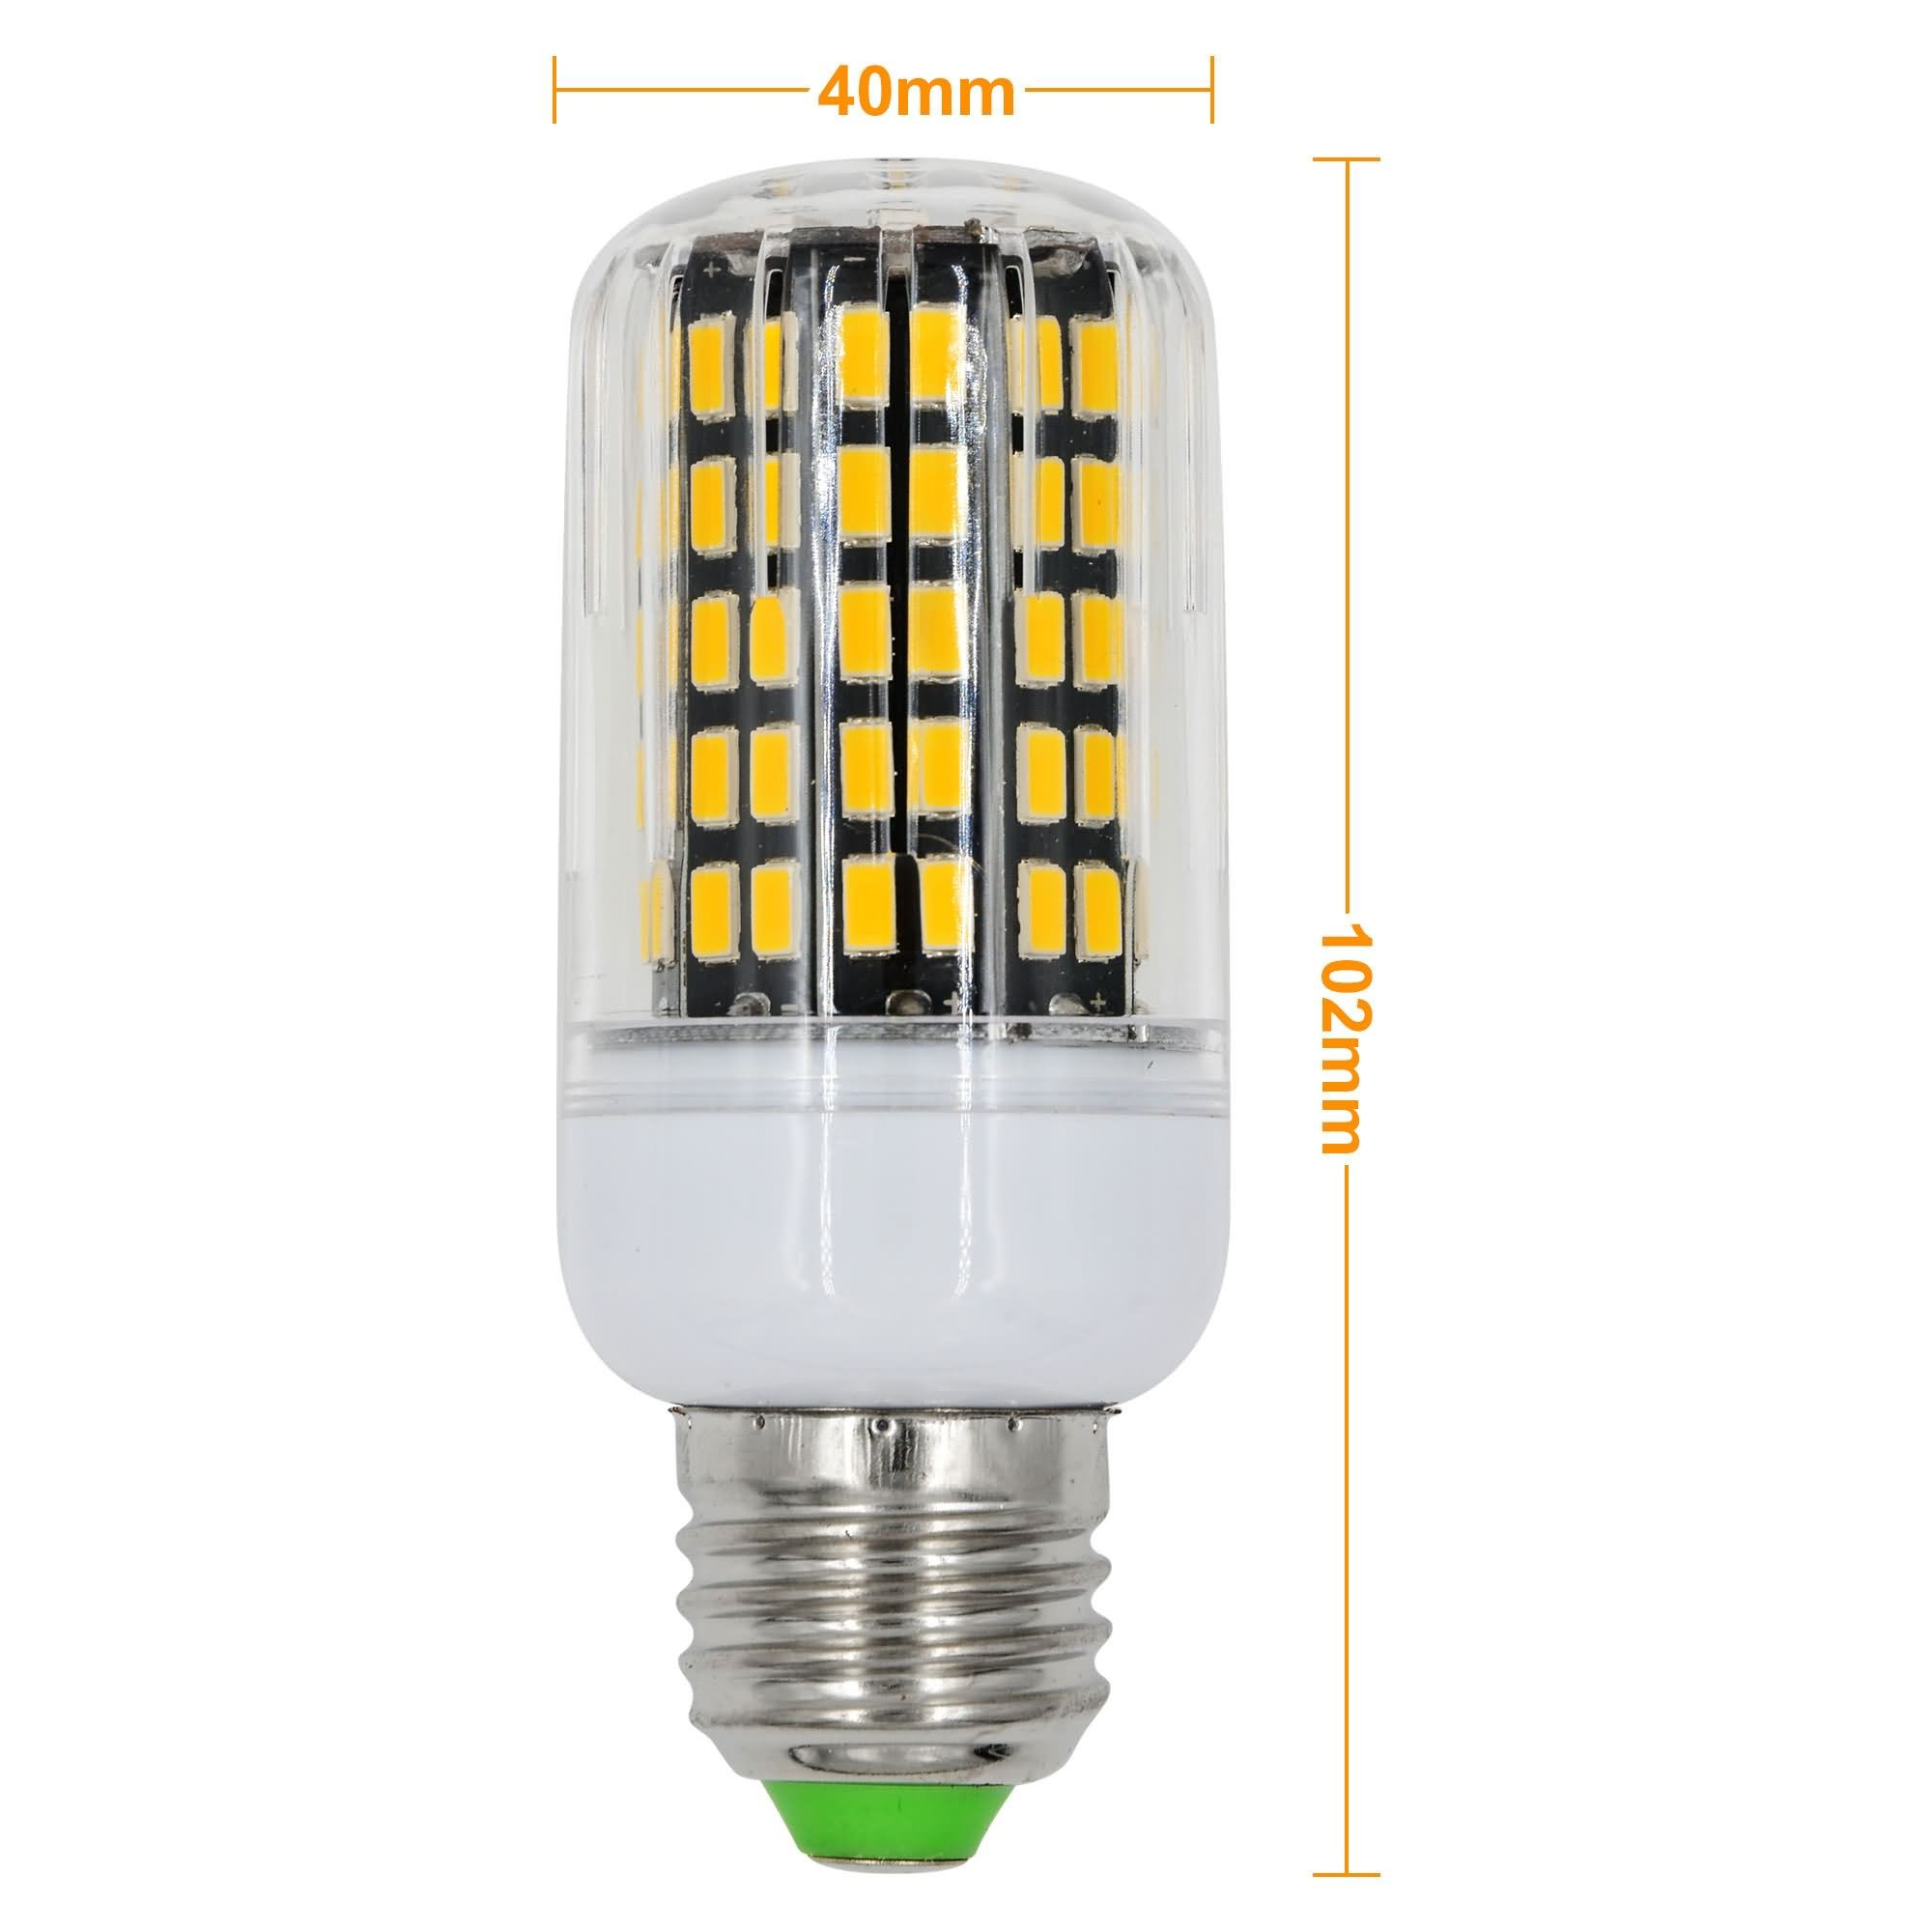 mengsled mengs e27 15w led corn light 108x 5733 smd led bulb lamp in warm white cool white. Black Bedroom Furniture Sets. Home Design Ideas